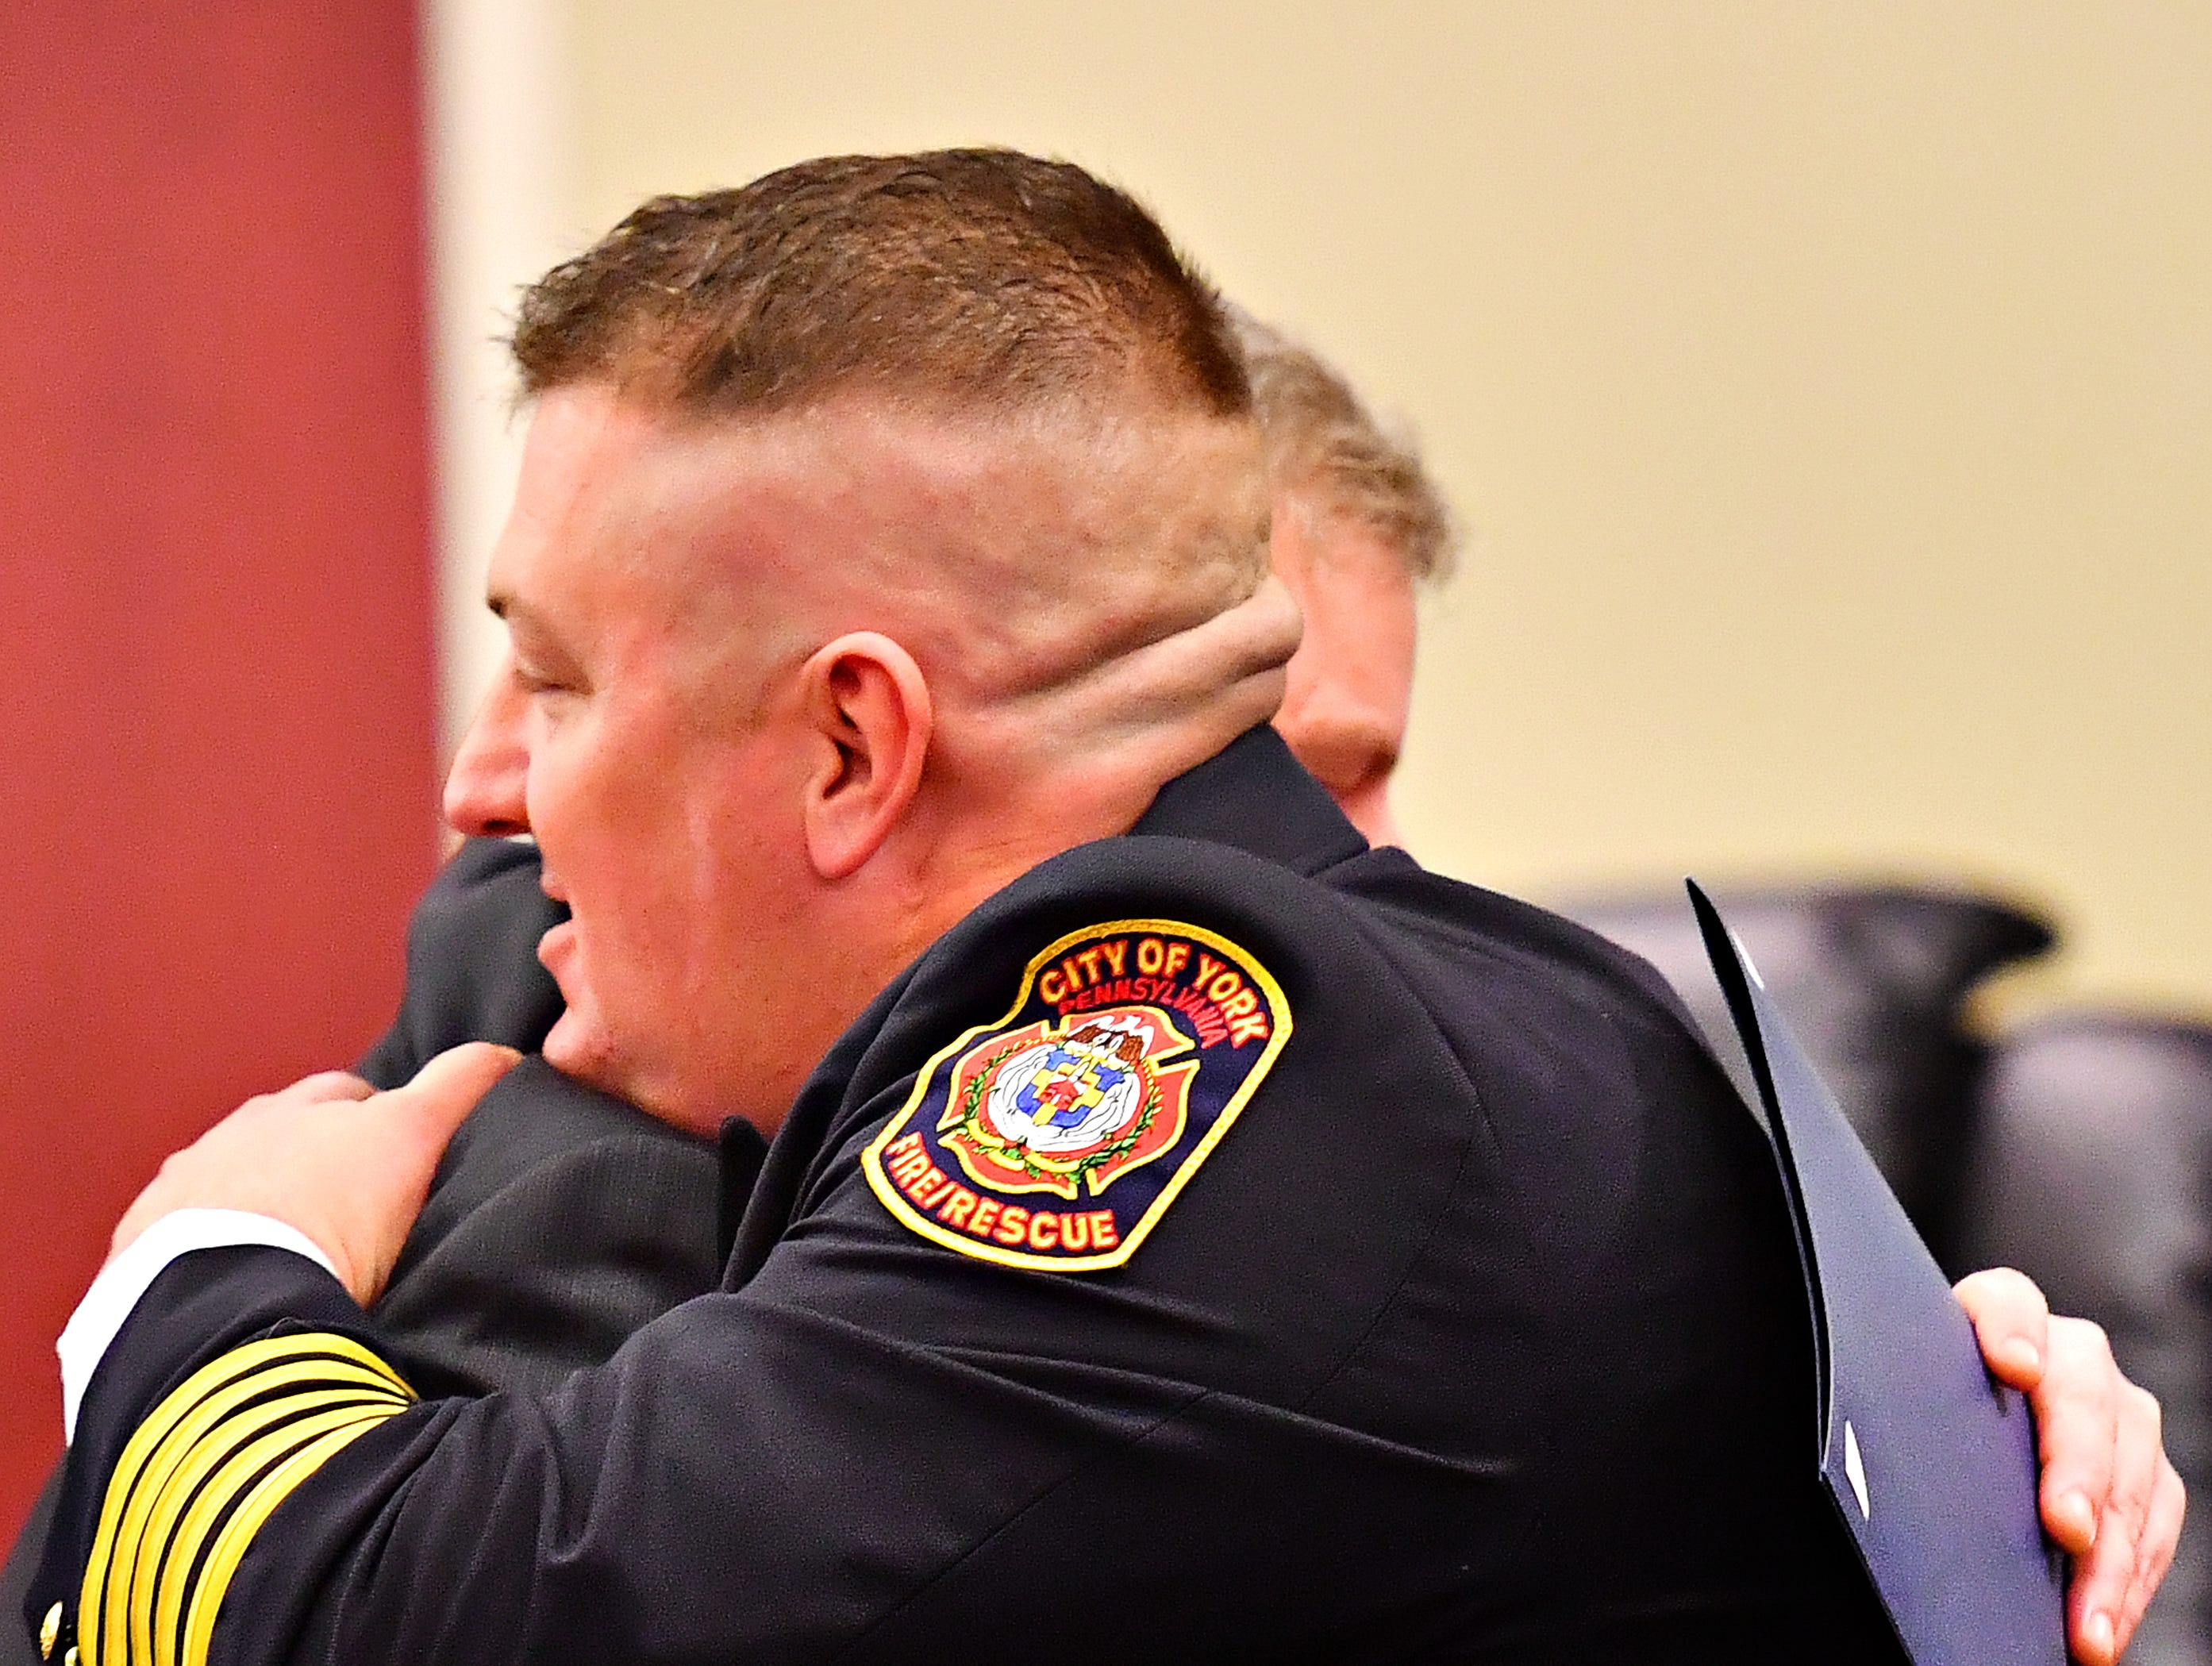 York City Mayor Michael Helfrich hugs York City Fire Chief Chad Deardorff during a swearing-in ceremony at York City Hall in York City, Friday, March 8, 2019. Dawn J. Sagert photo